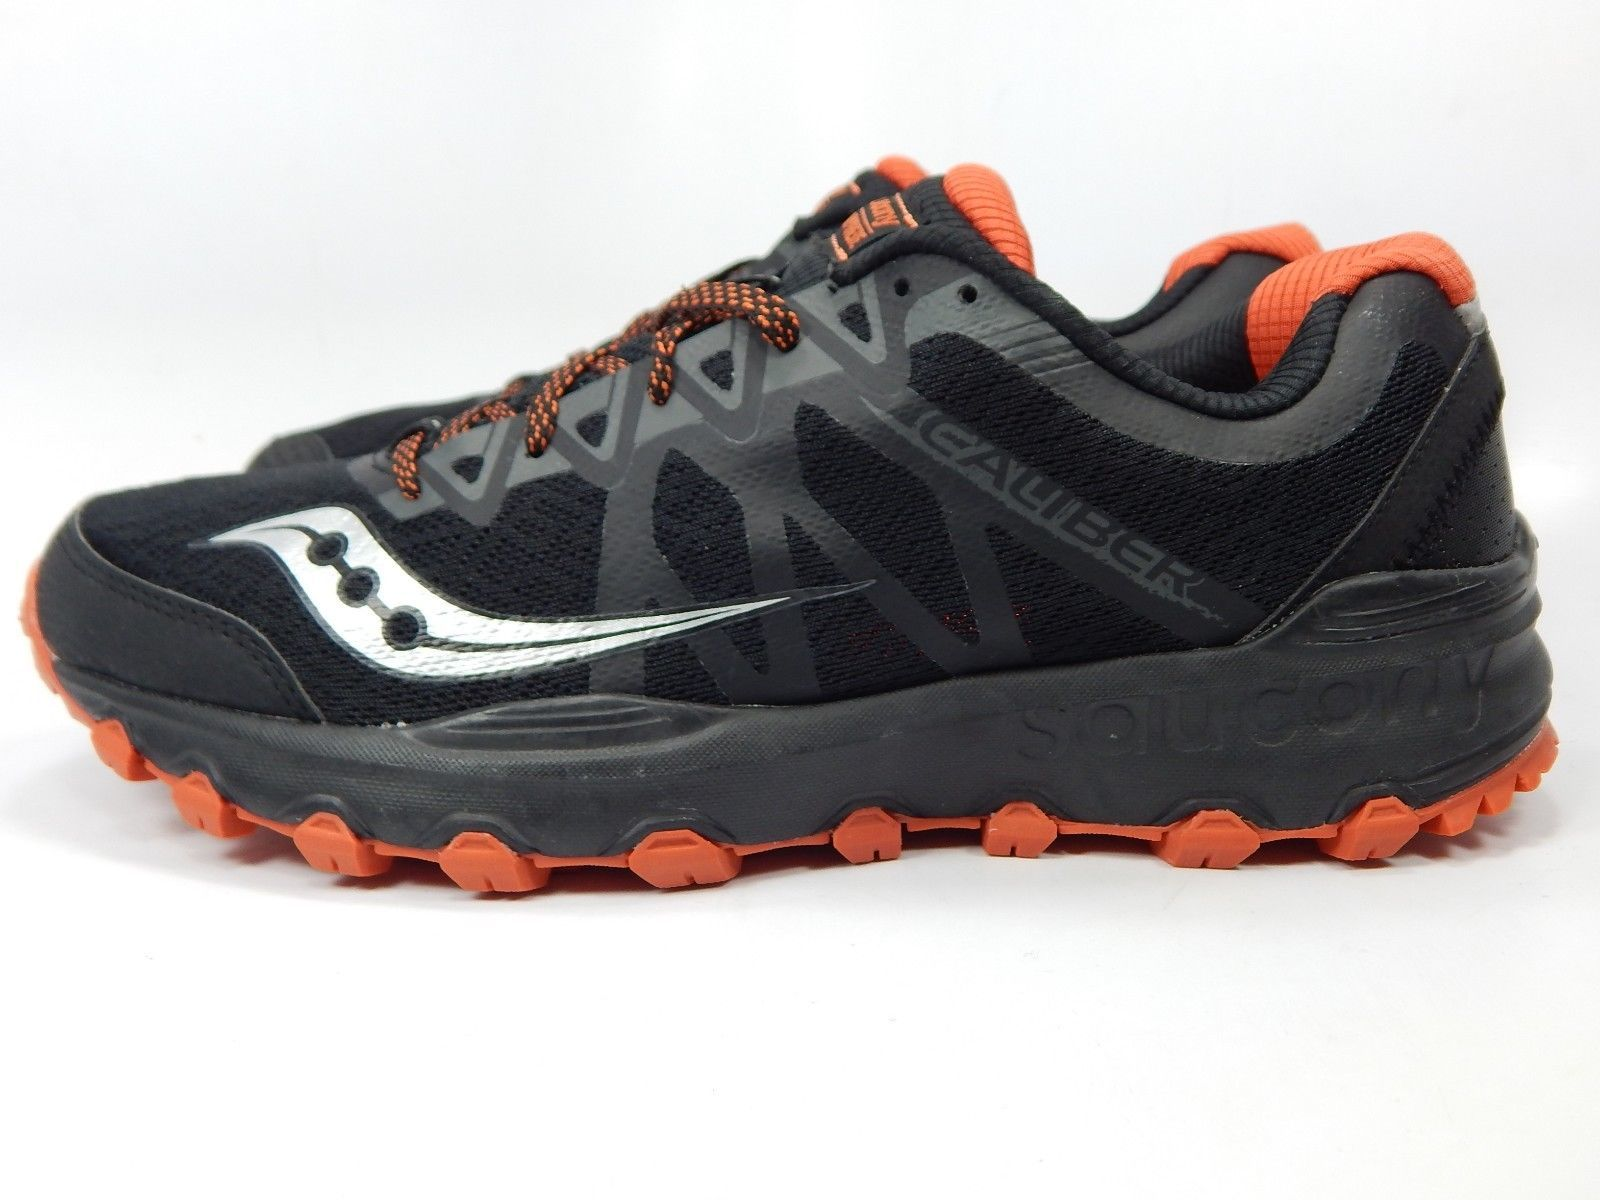 Saucony Caliber TR Men's Trail Running Shoes Size 9 M (D) EU 42.5 Black S25326-3